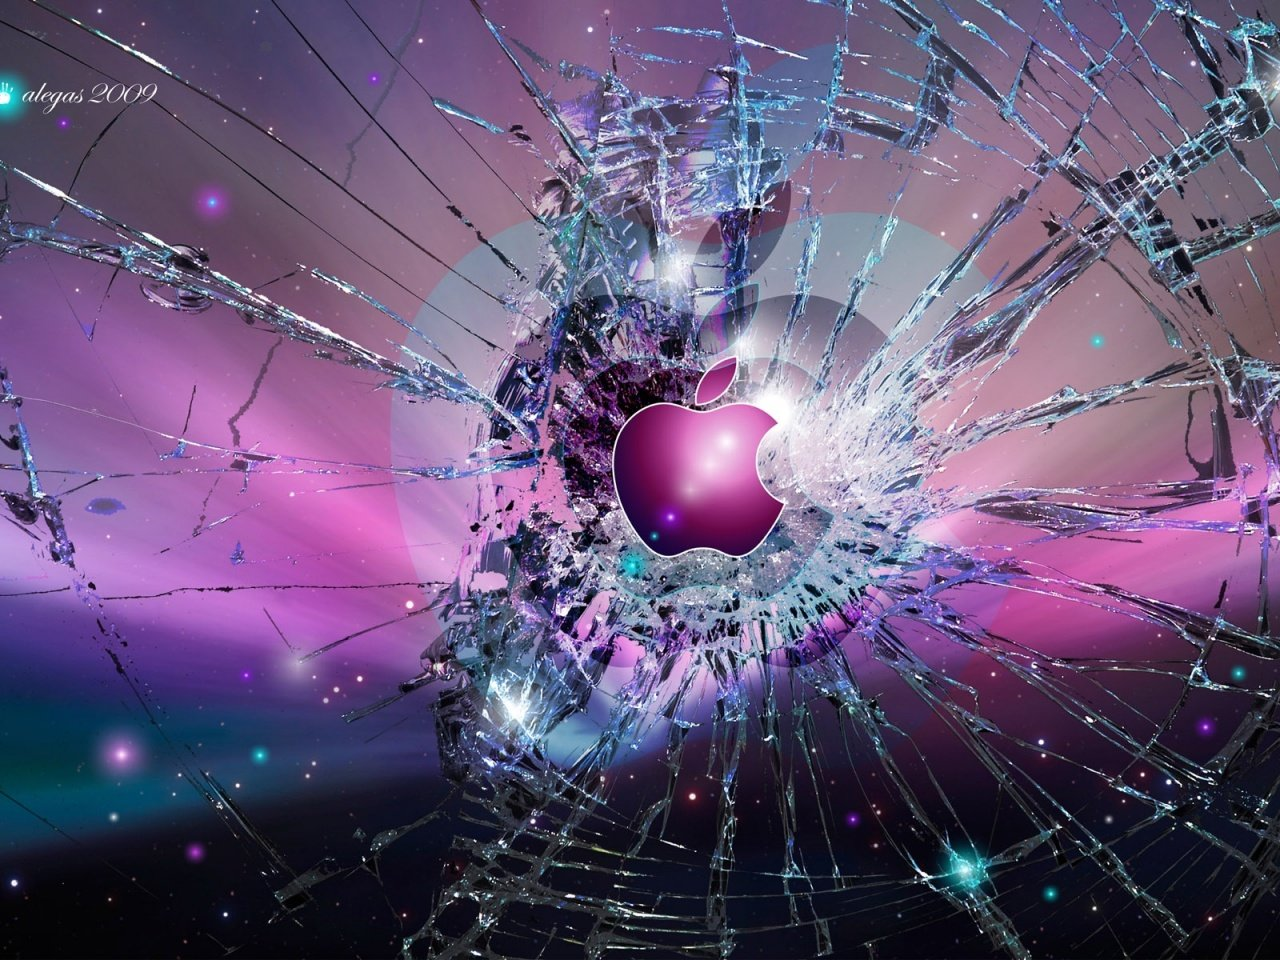 Apple Broken Screen Background Wallpaper Picture 1280x960